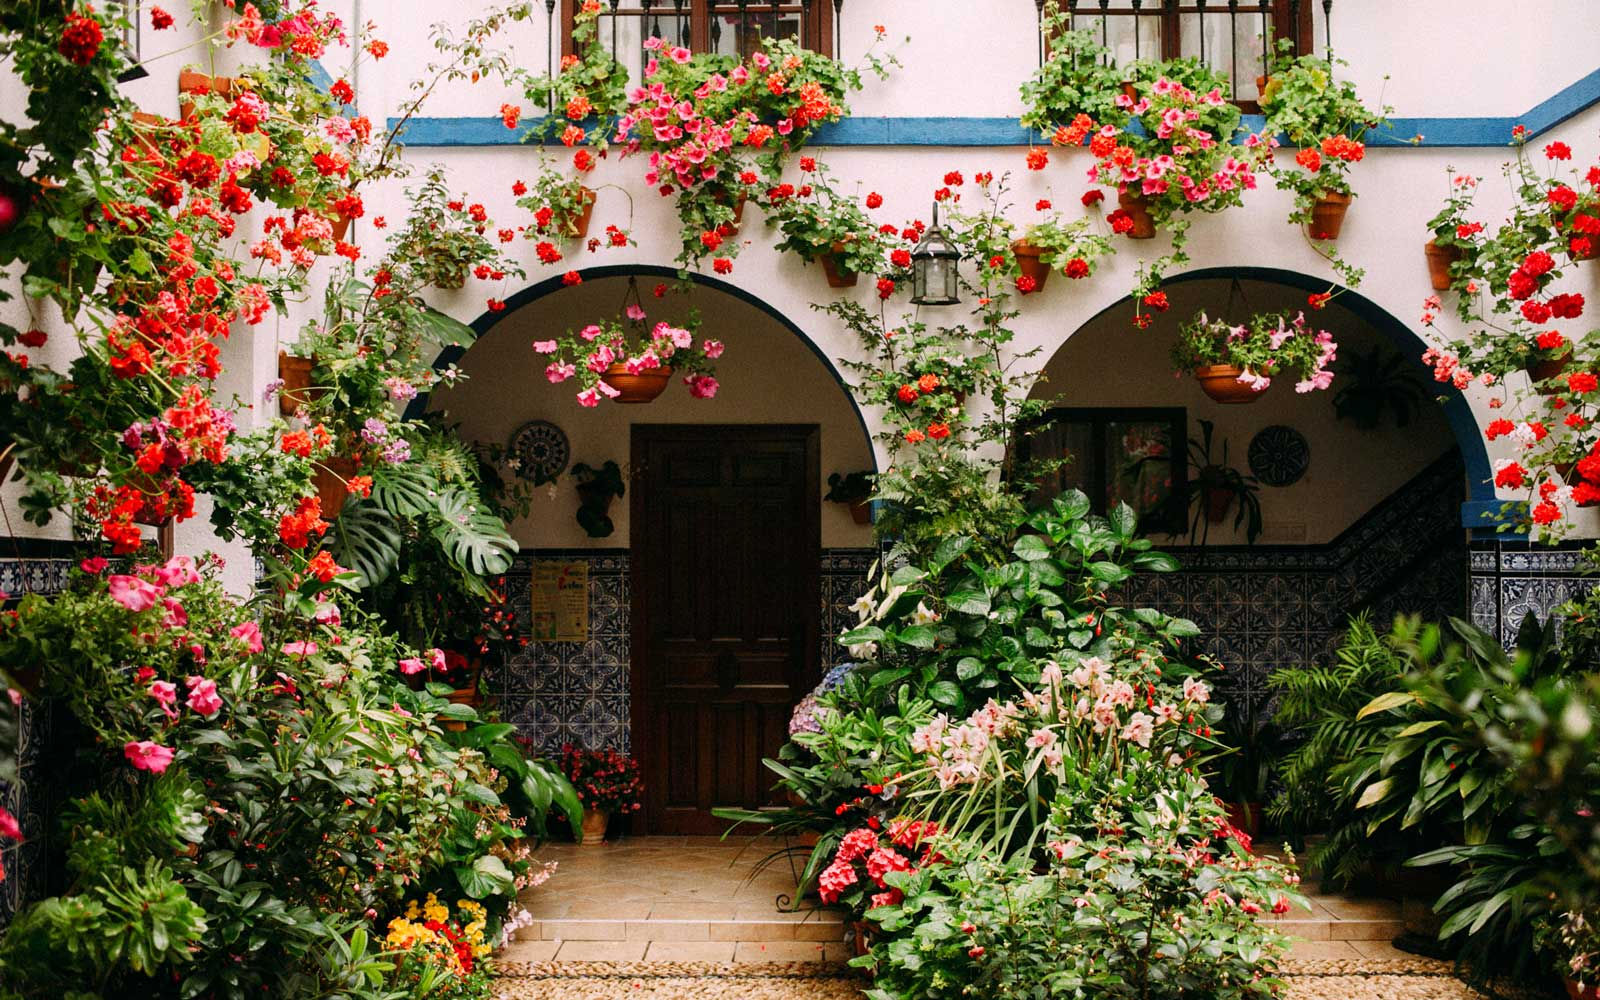 Every Spring, This Spanish Town Has a Flower Festival That's Bursting With Color